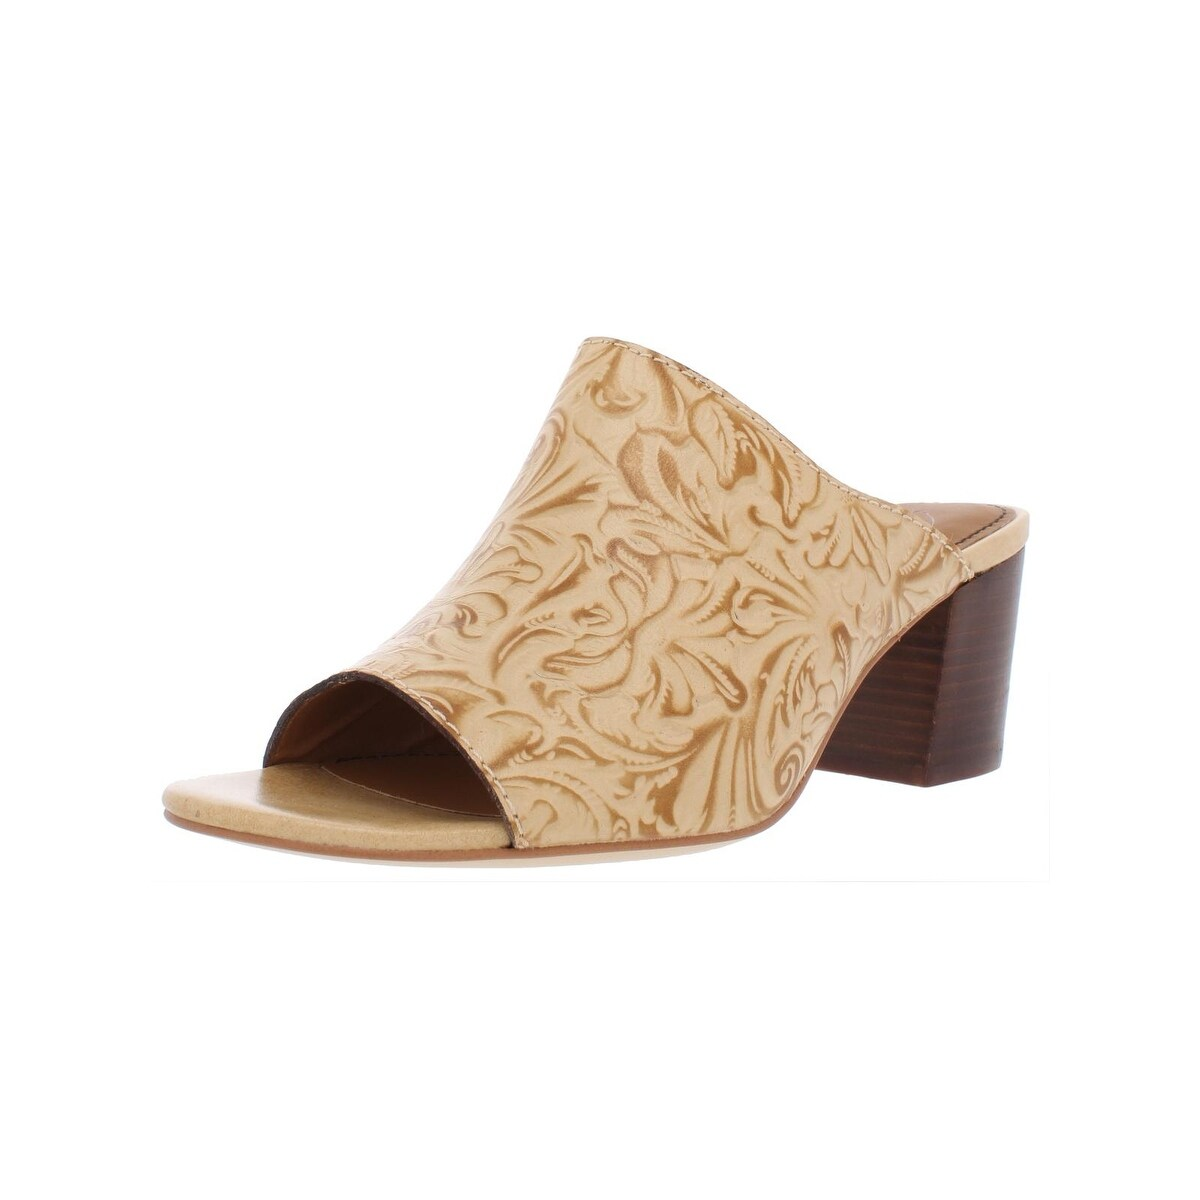 2ca3807d365 Shop Patricia Nash Womens Shelli Dress Sandals Leather Stacked Heel - Free  Shipping Today - Overstock - 27699435